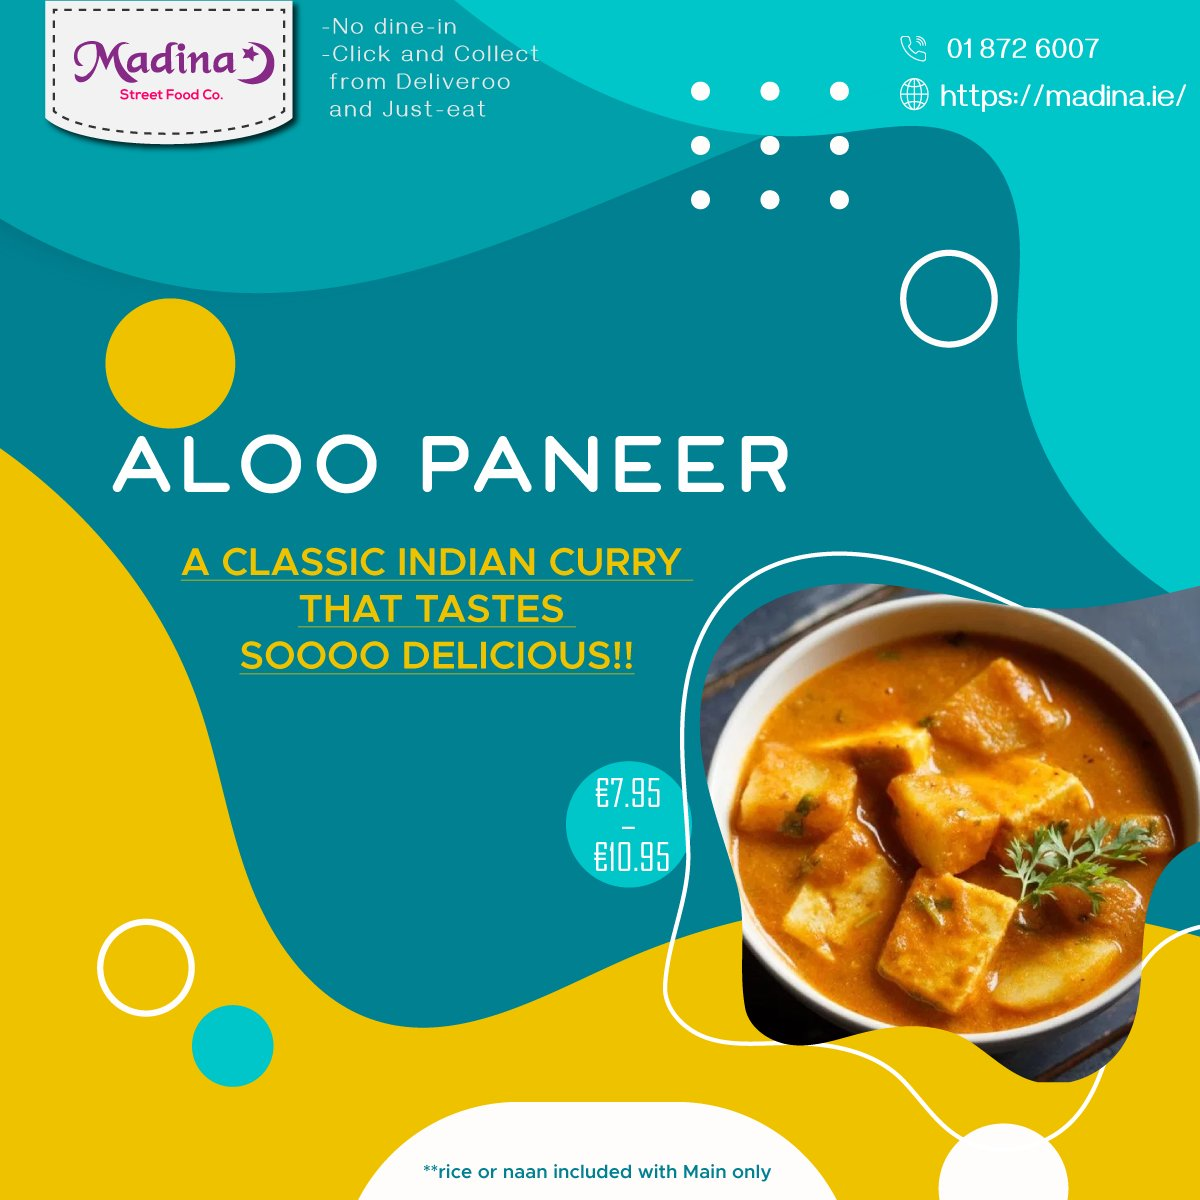 Order now!! 🌐 Or place an order at Deliveroo or Just-Eat!!   #lambcurry #Curry #currynight #currylamb #currysauce #currybrand #indian #indianfood #indiancuisine  #indianfoodbloggers #indianfoodlovers #indianfoodrecipes #indianfoodie #indianfoodstories